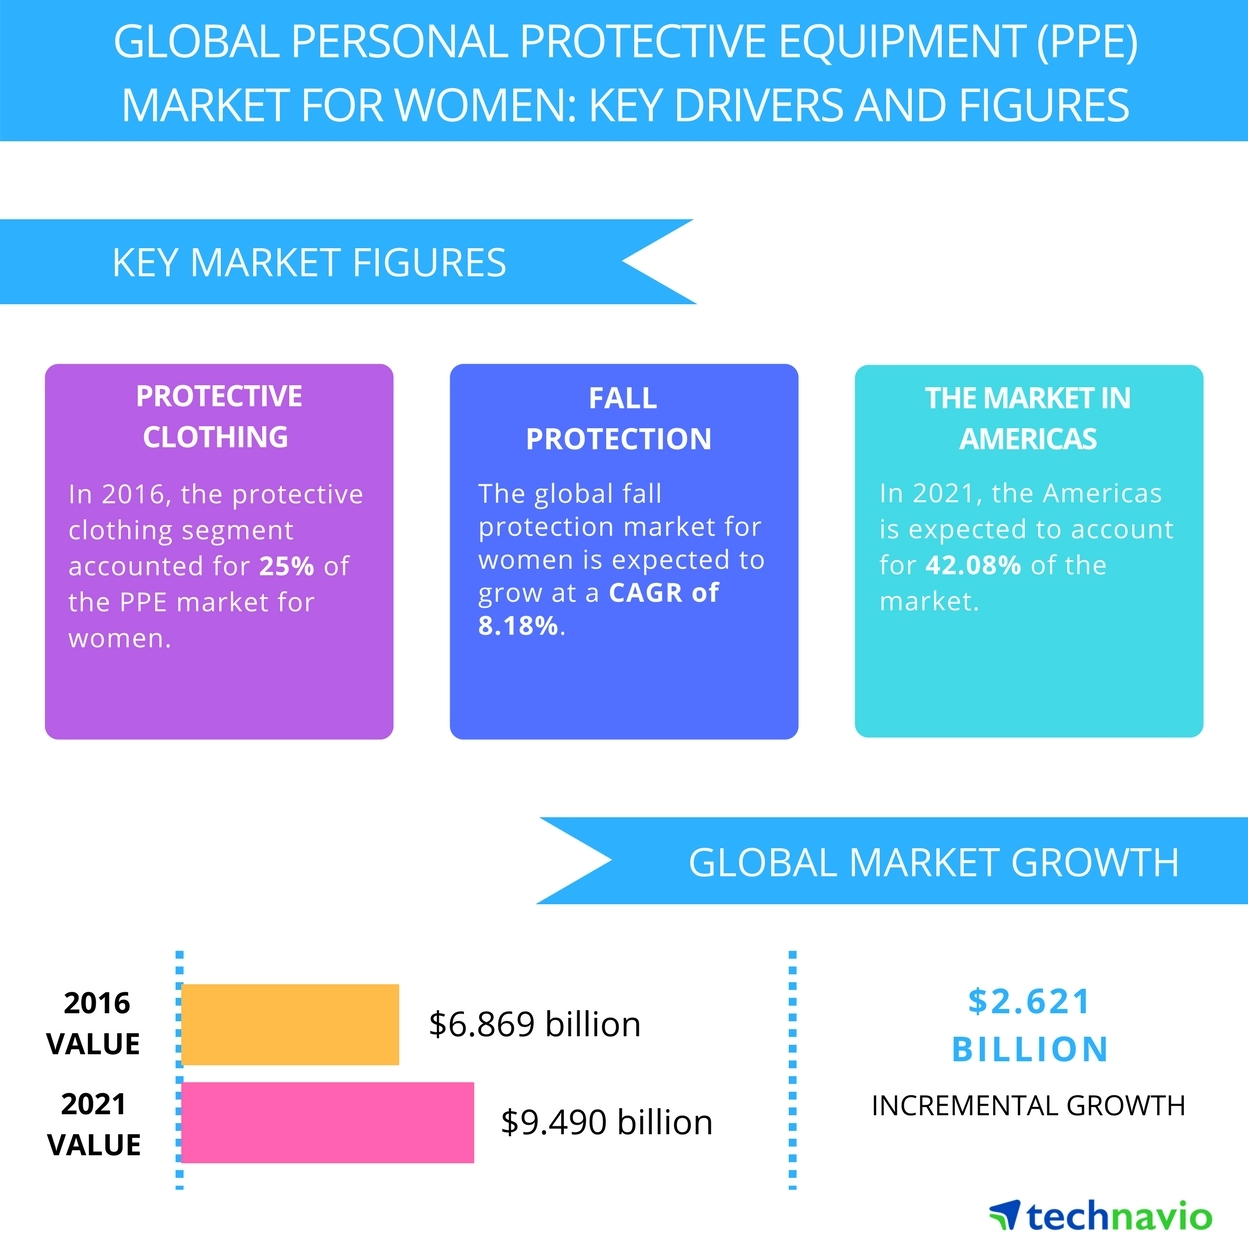 Technavio has published a new report on the global personal protective equipment market for women from 2017-2021. (Graphic: Business Wire)